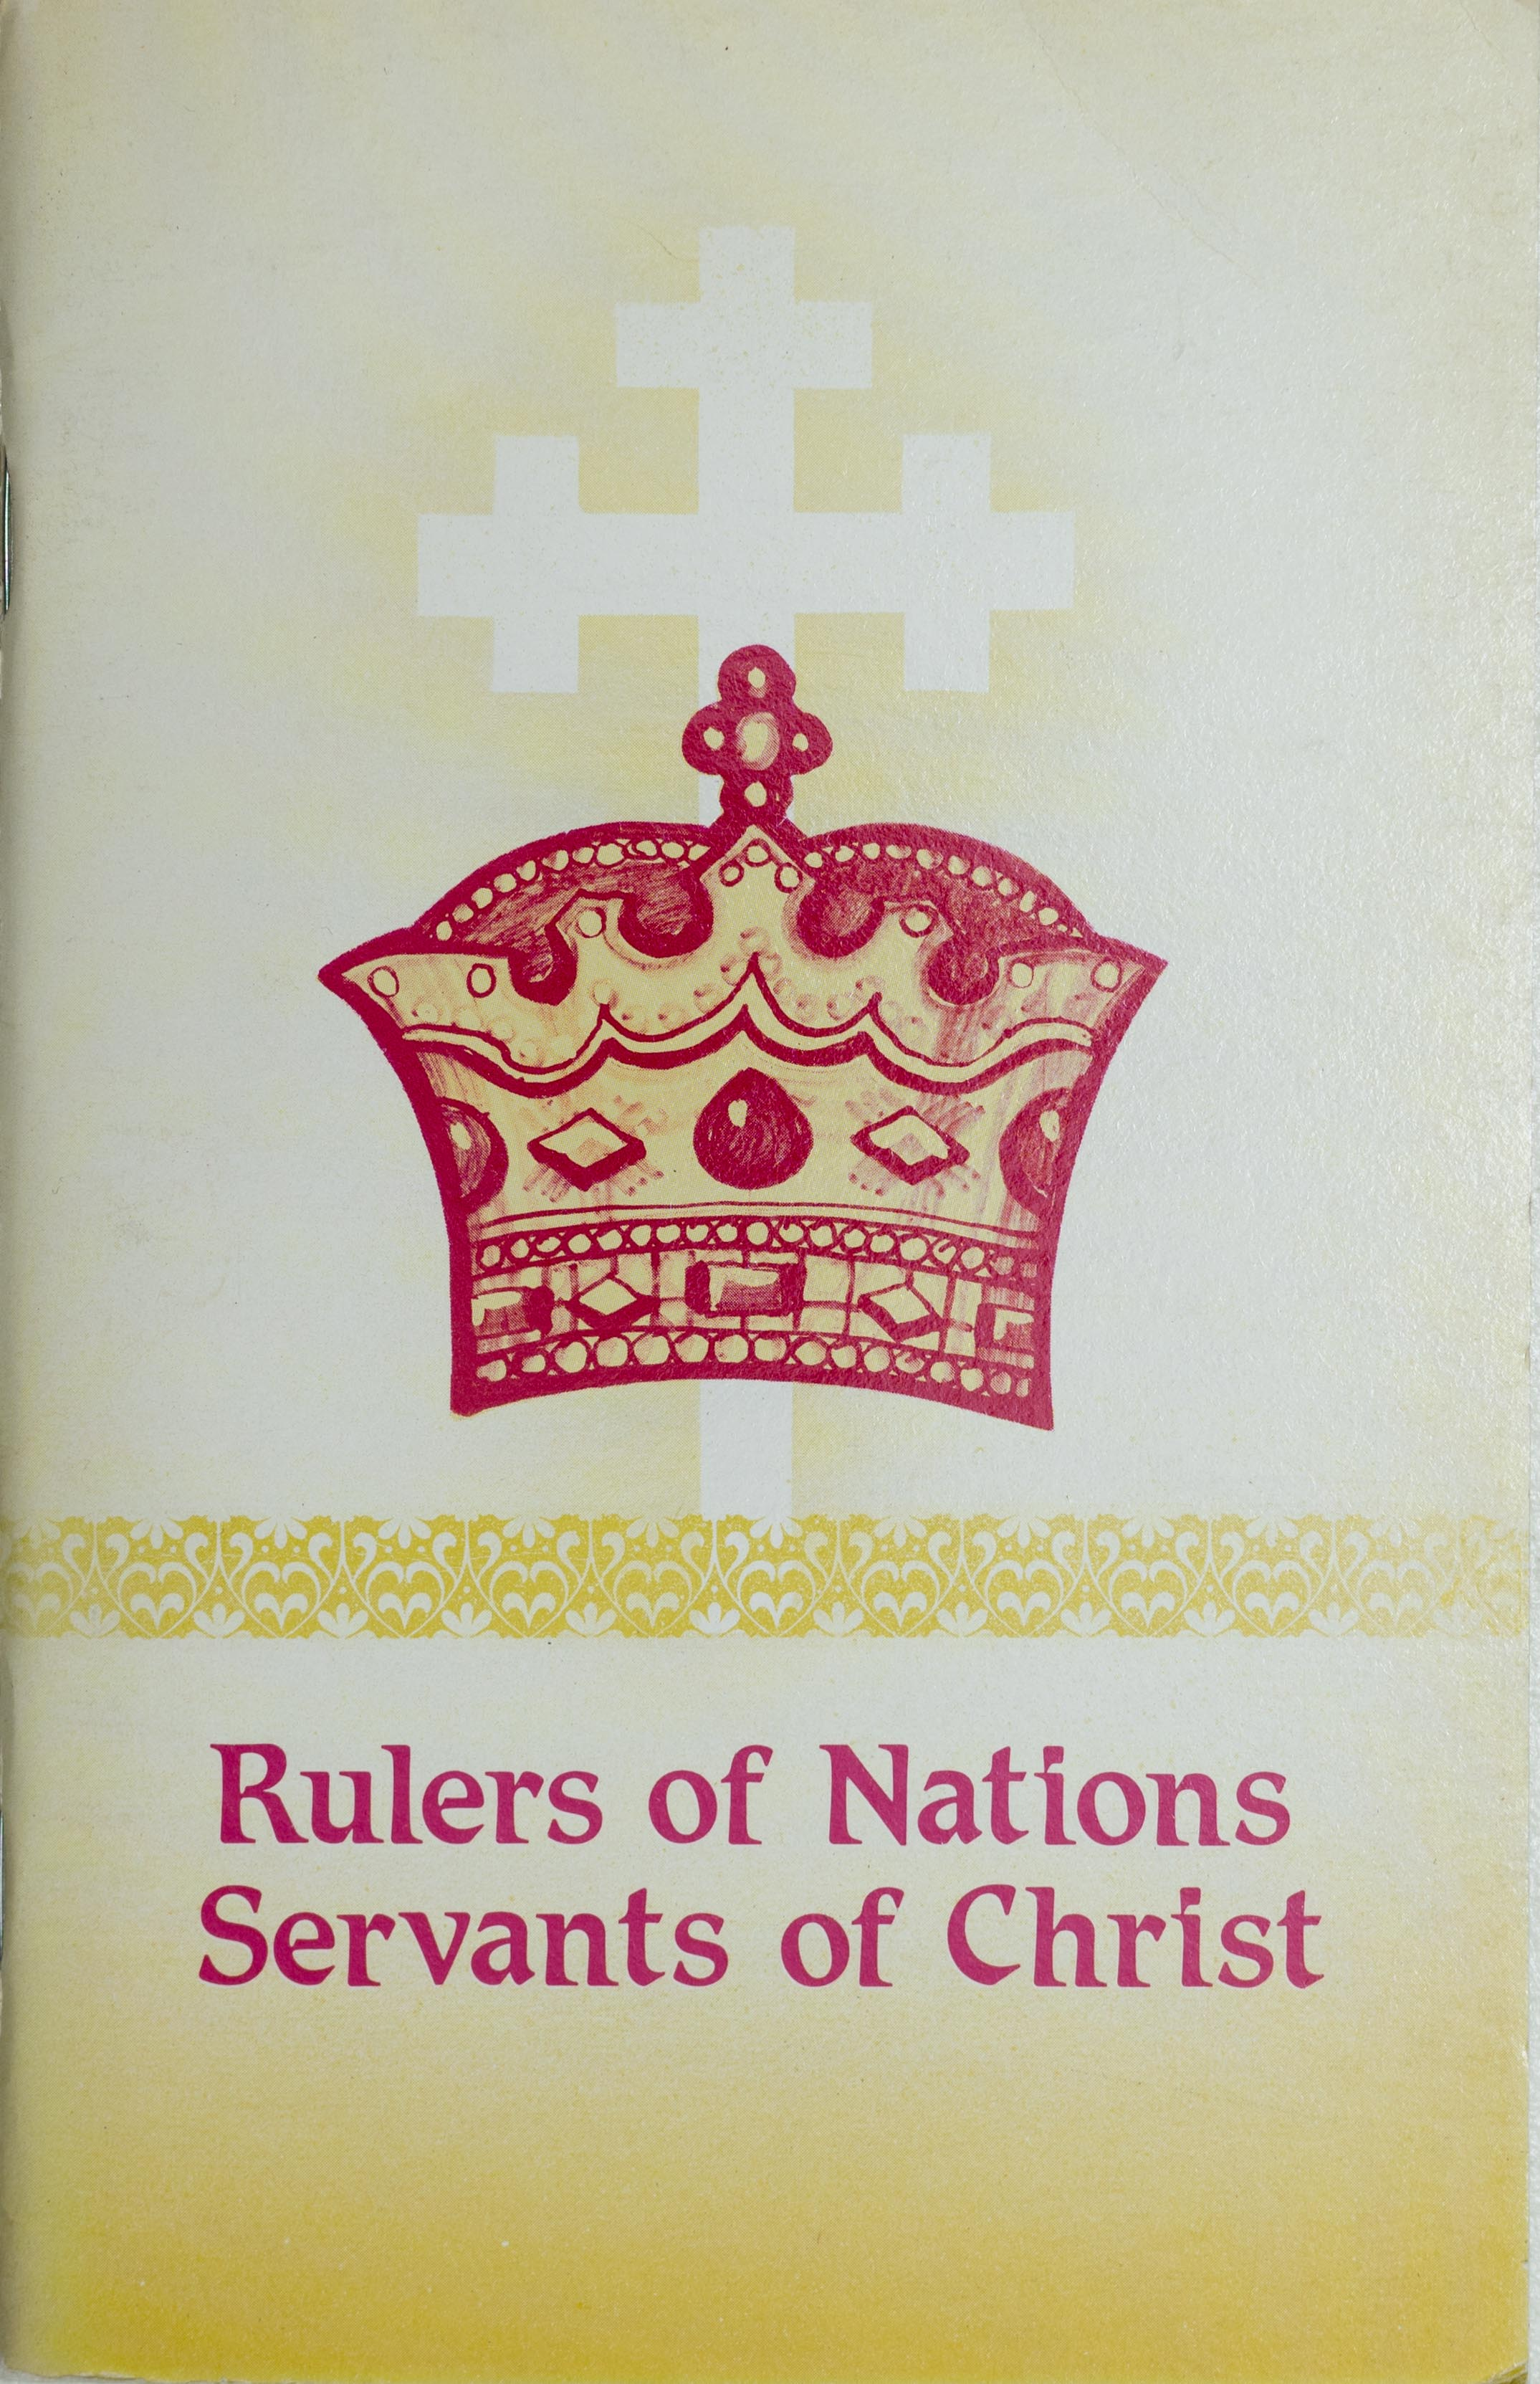 Rulers of Nations Servants of Christ